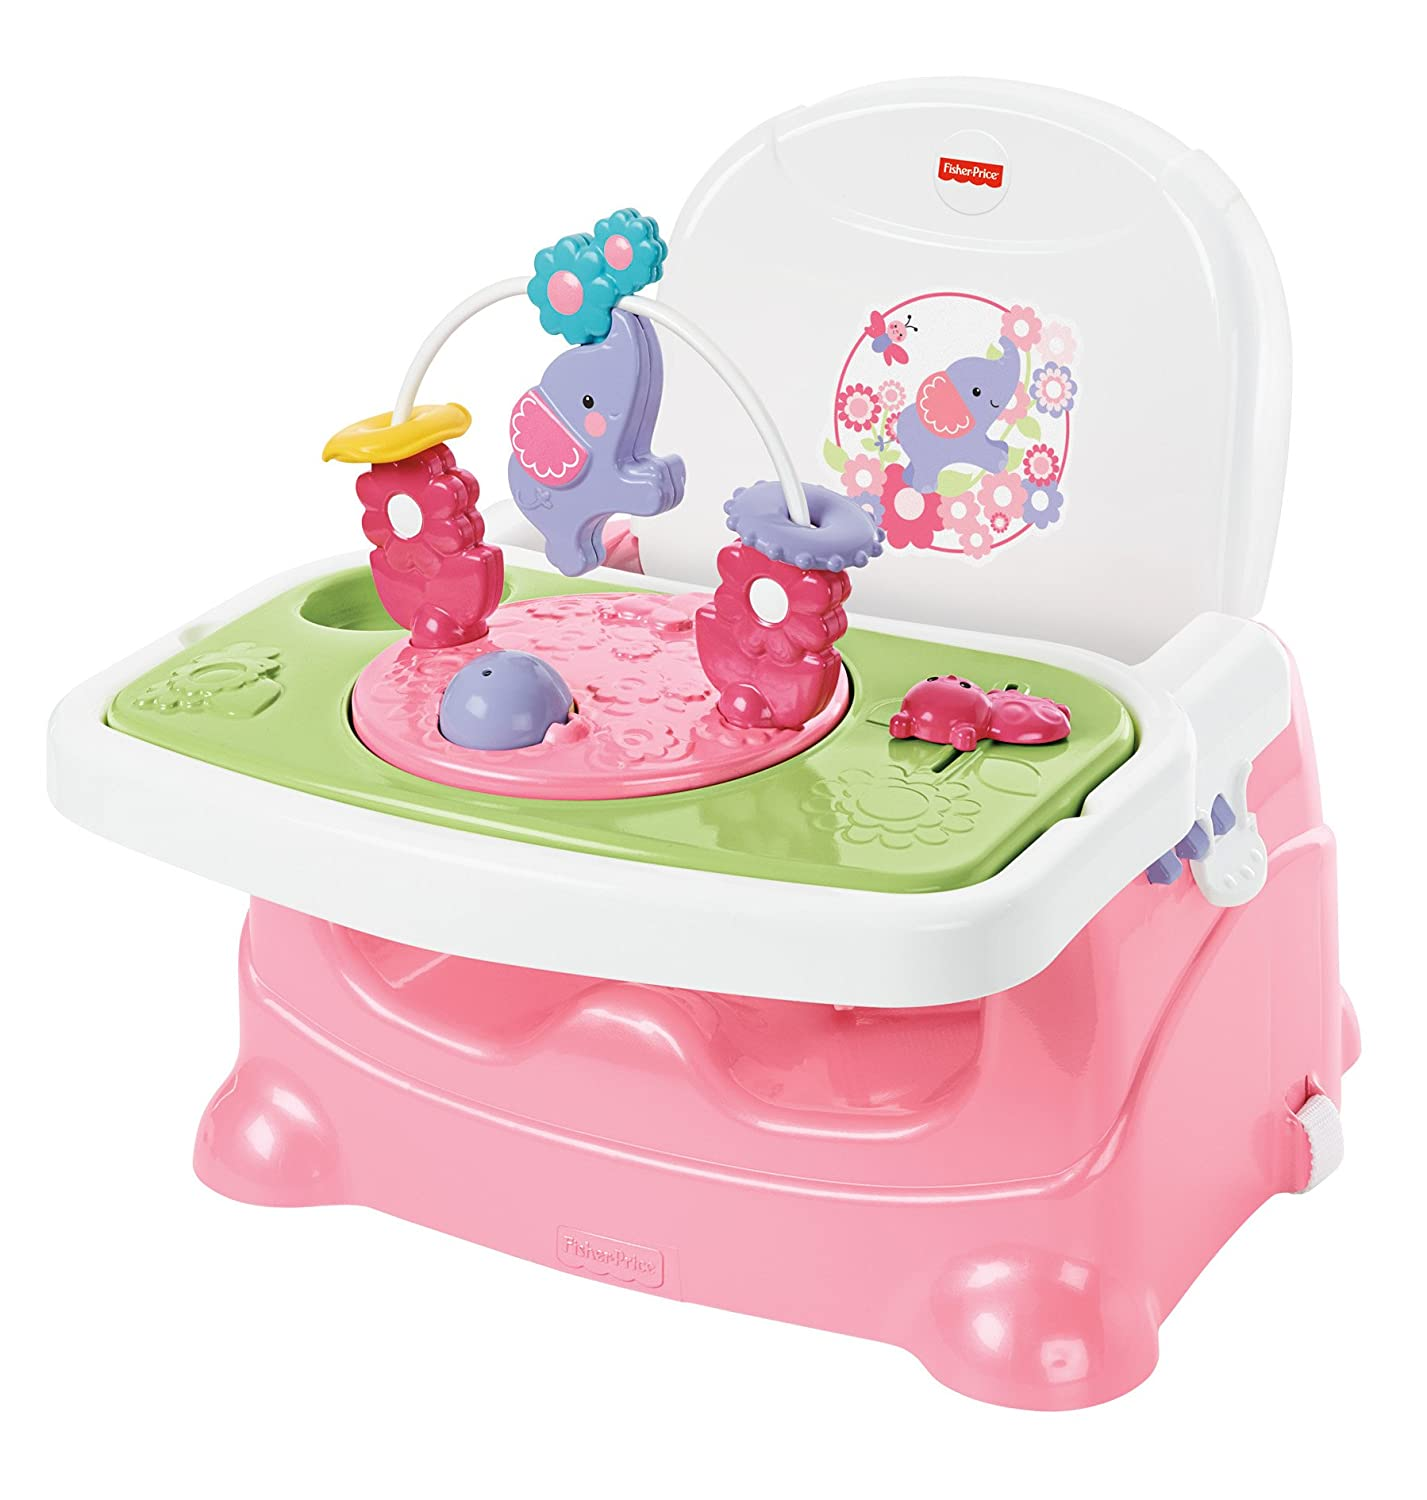 Fisher price booster chair - Fisher Price Booster Chair 12